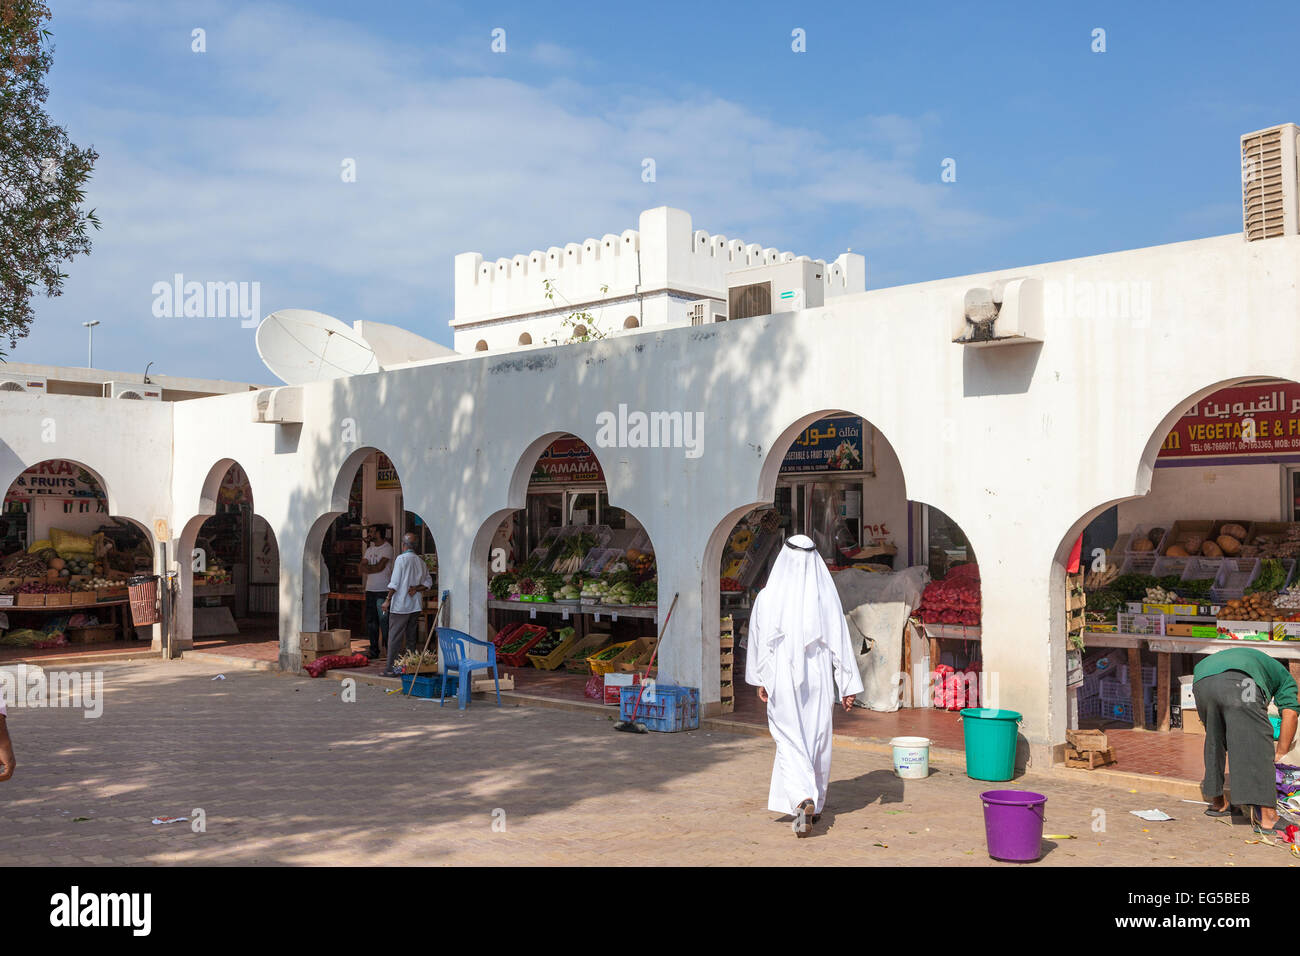 Fruit and vegetables market in the emirate of Ajman Stock Photo